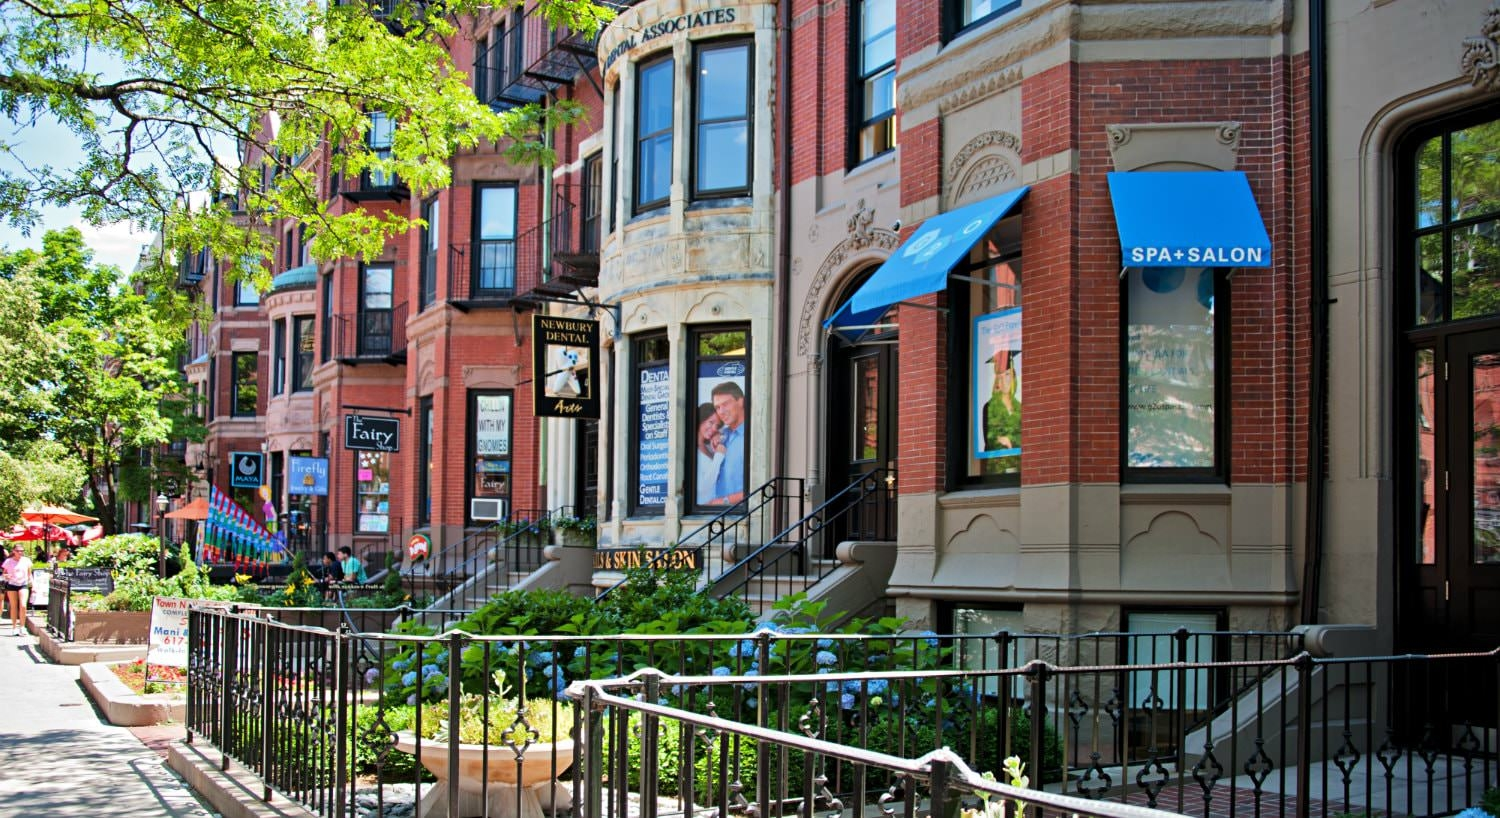 Row of red and beige brownstone storefronts with metal railings and green trees